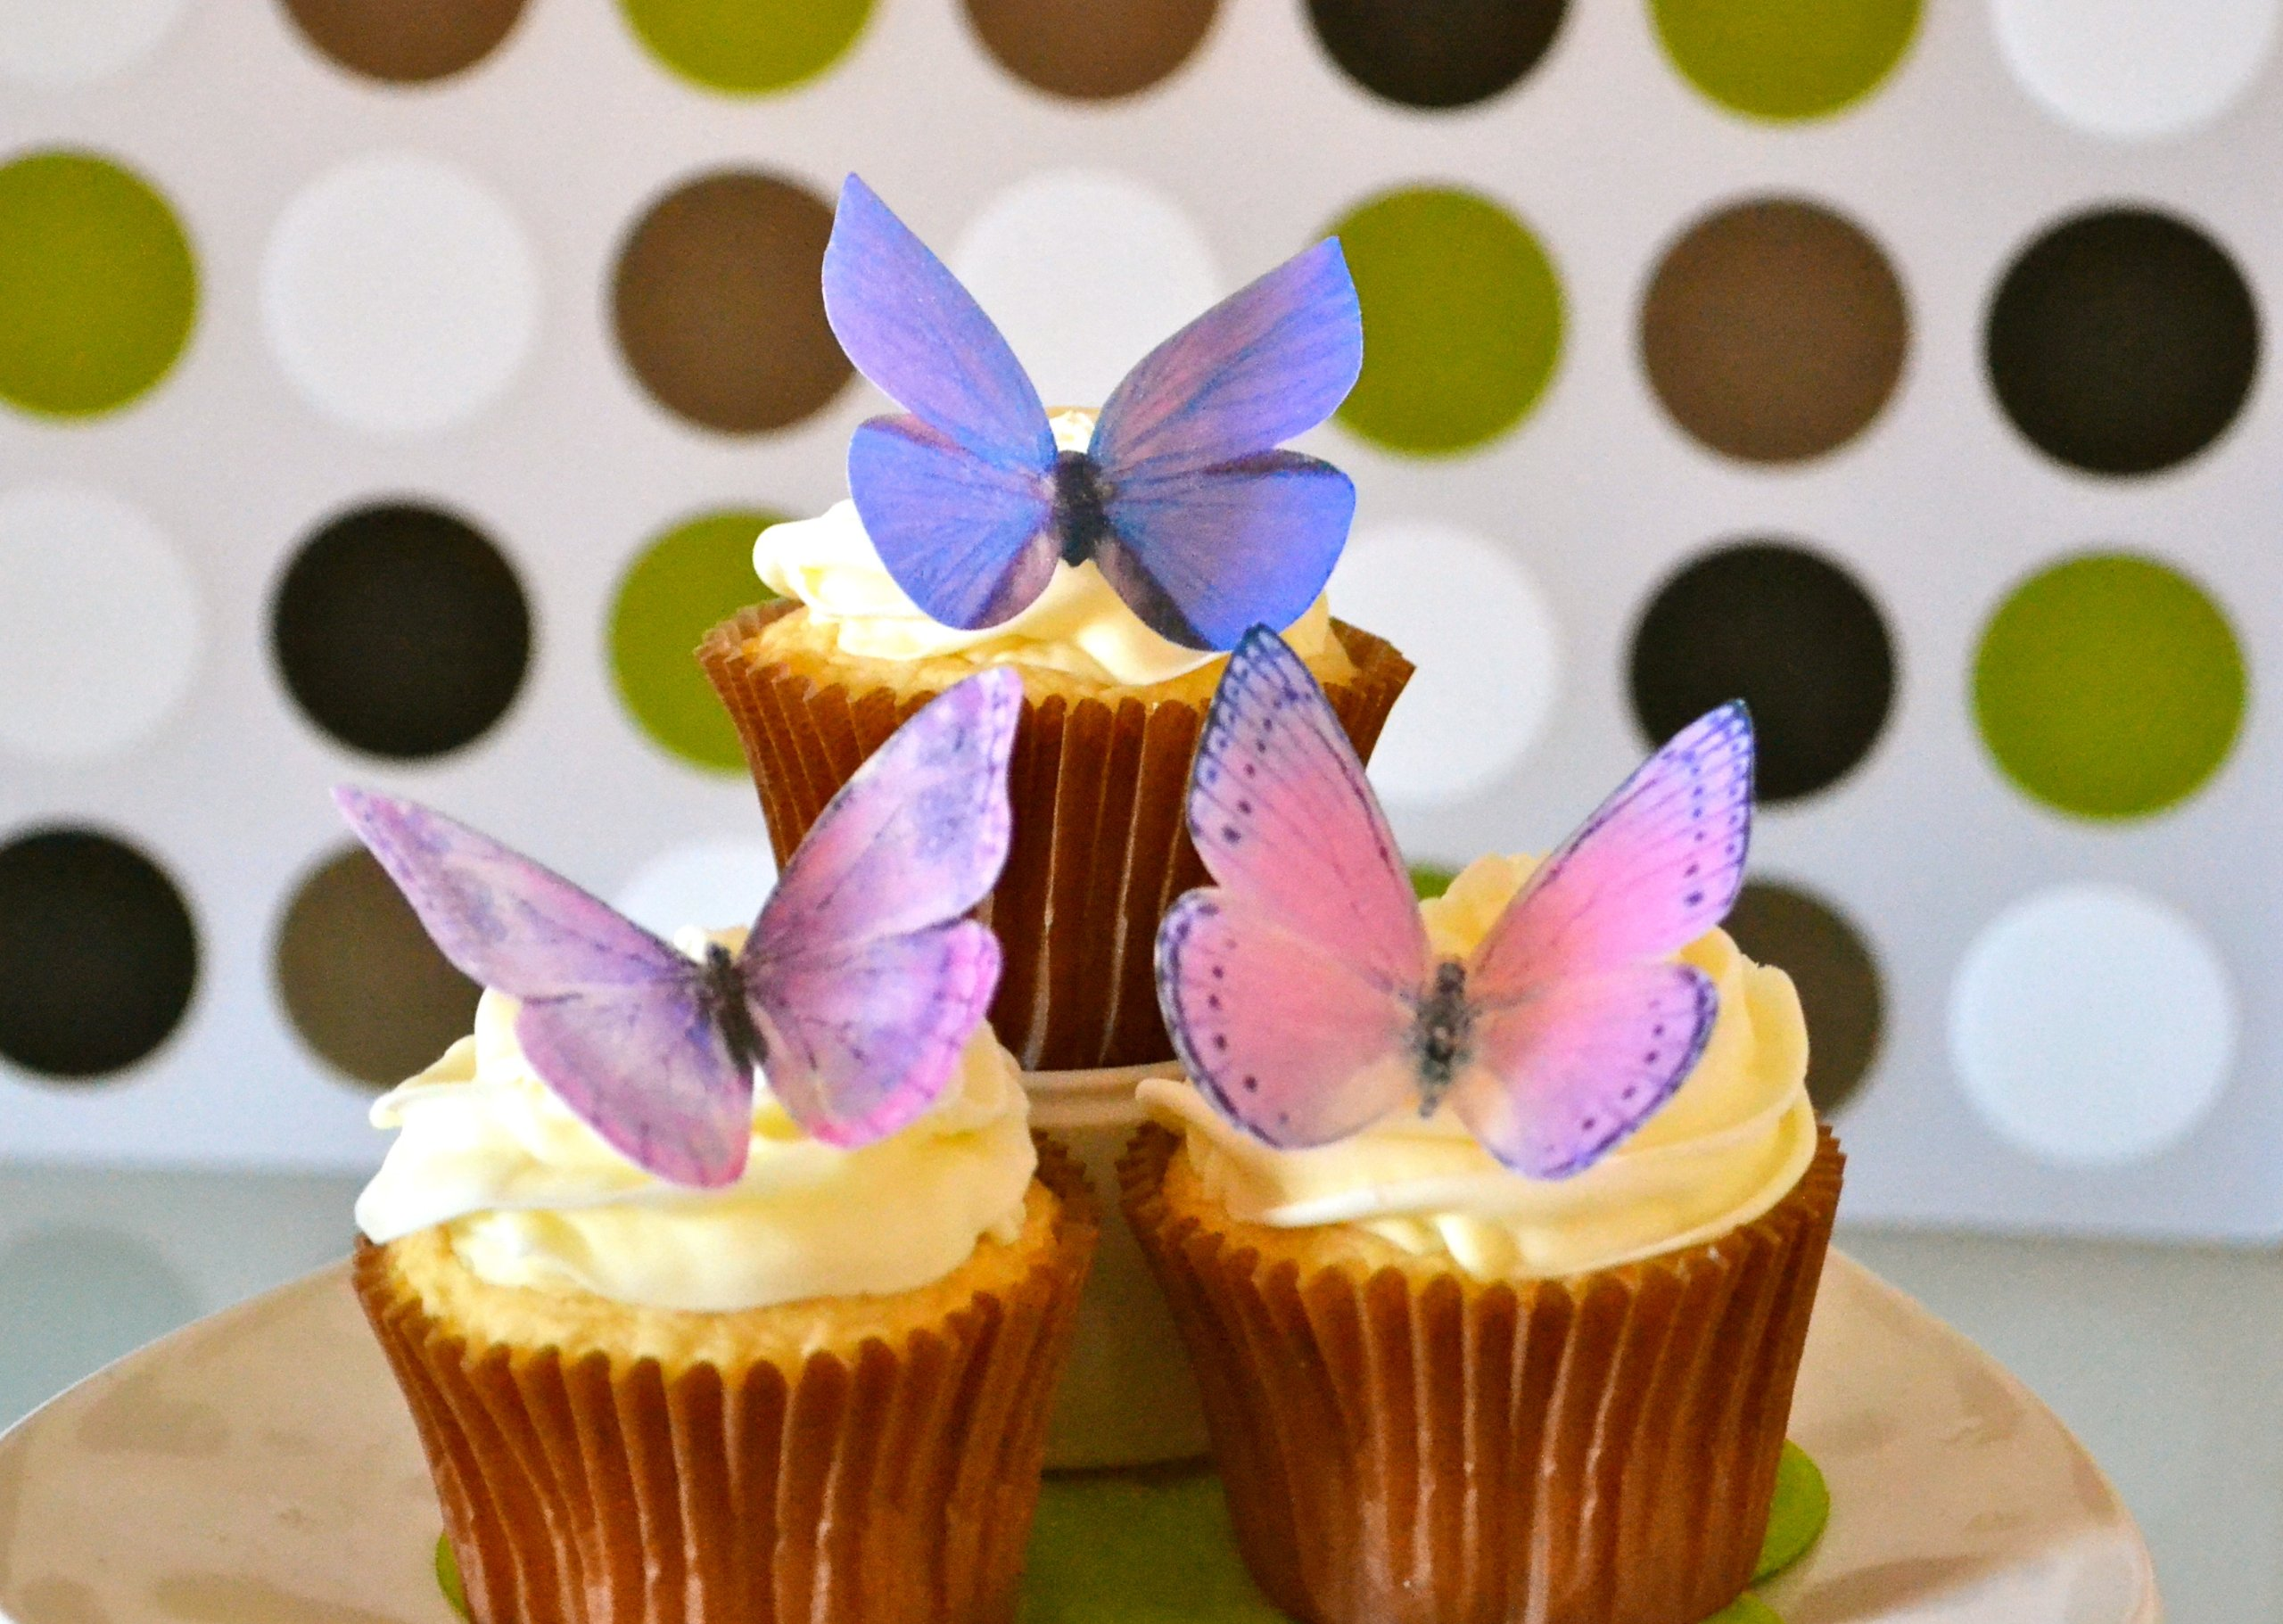 Edible Butterflies © -Large Purple Set of 12 - Cake and Cupcake Toppers, Decoration